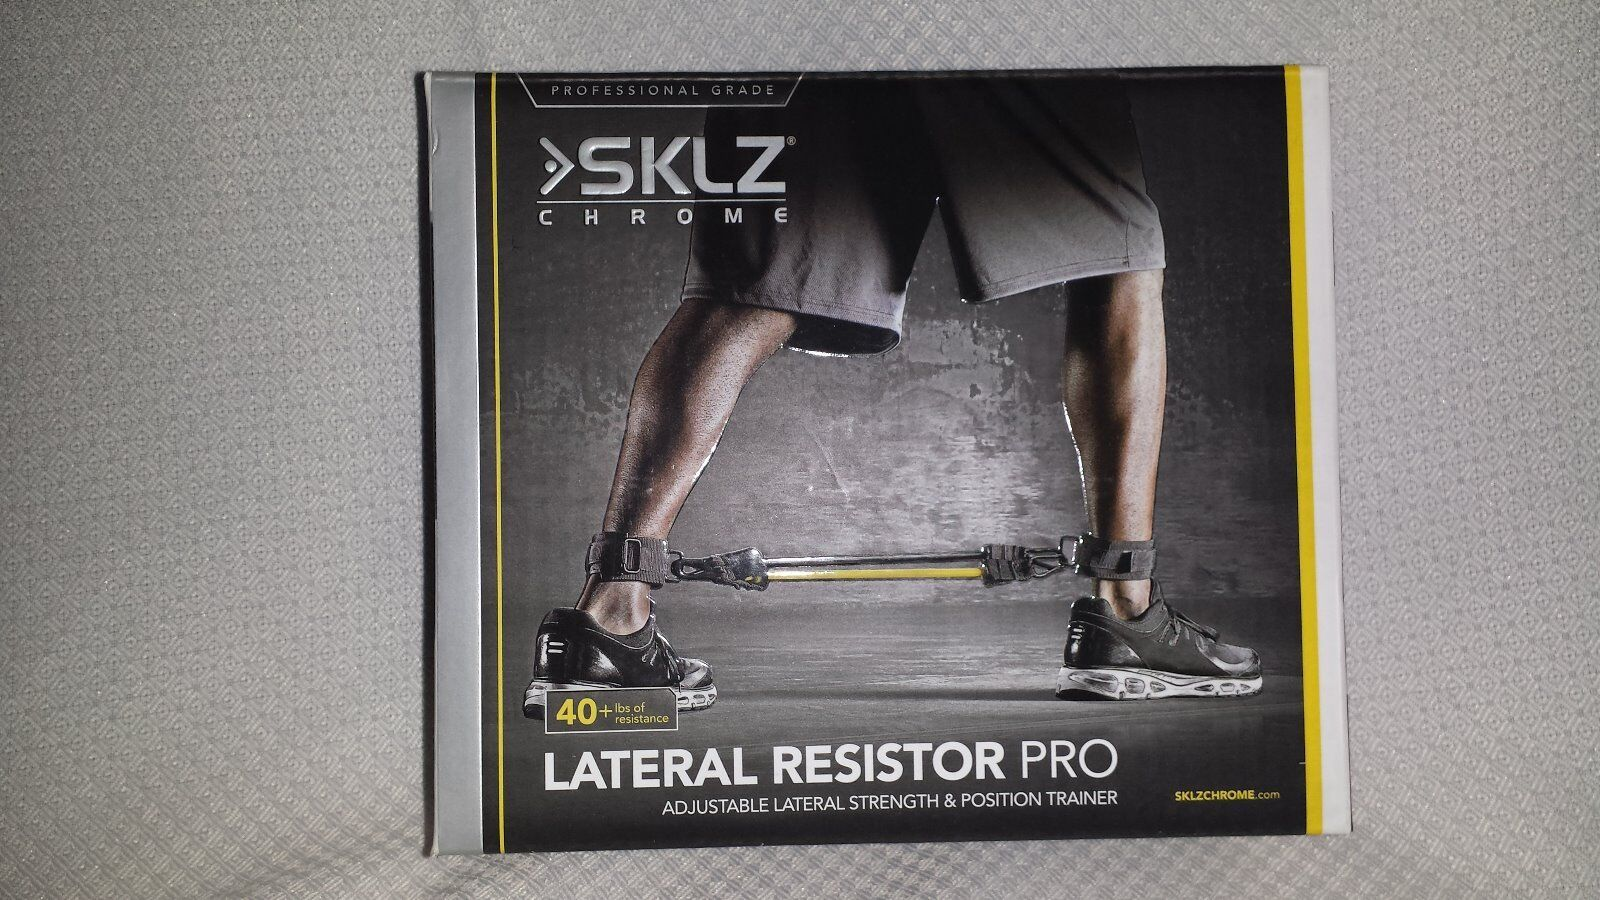 SKLZ Chrome Lateral  Resistor Pro Adjustable Lateral Strength and Position  70% off cheap